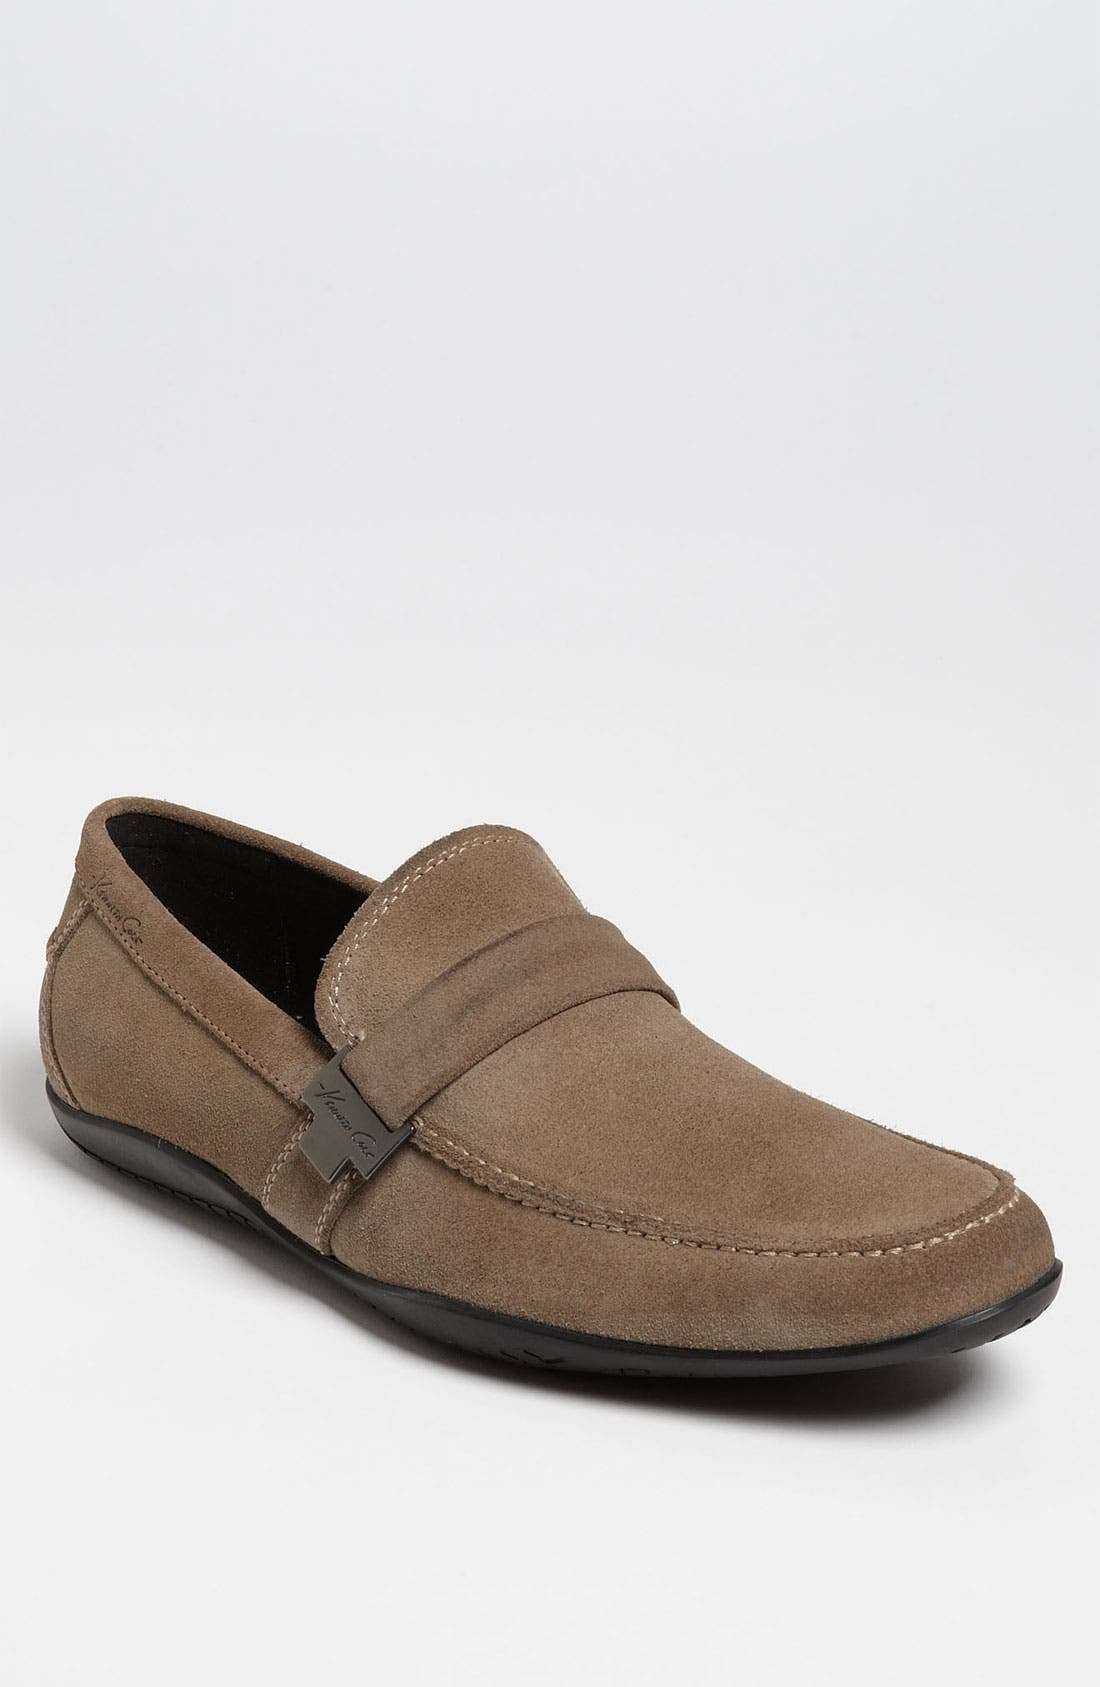 Alternate Image 1 Selected - Kenneth Cole New York 'Homeword Bound' Suede Loafer